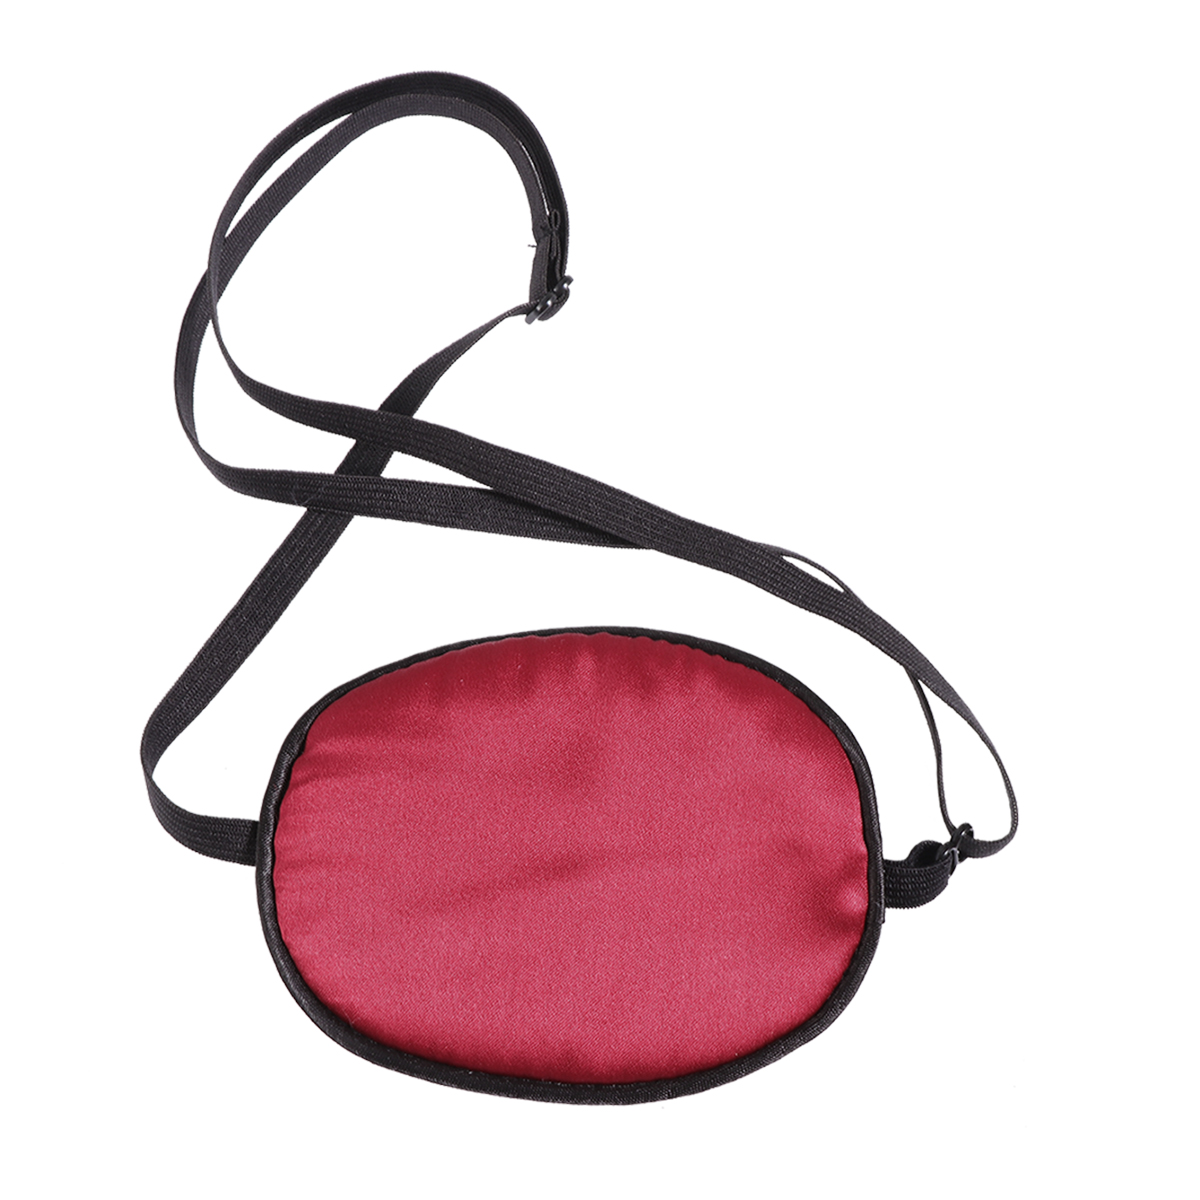 1pc Eye Patch Soft Silk Adjustable Pirate Mask for Lazy Eye Amblyopia Strabismus